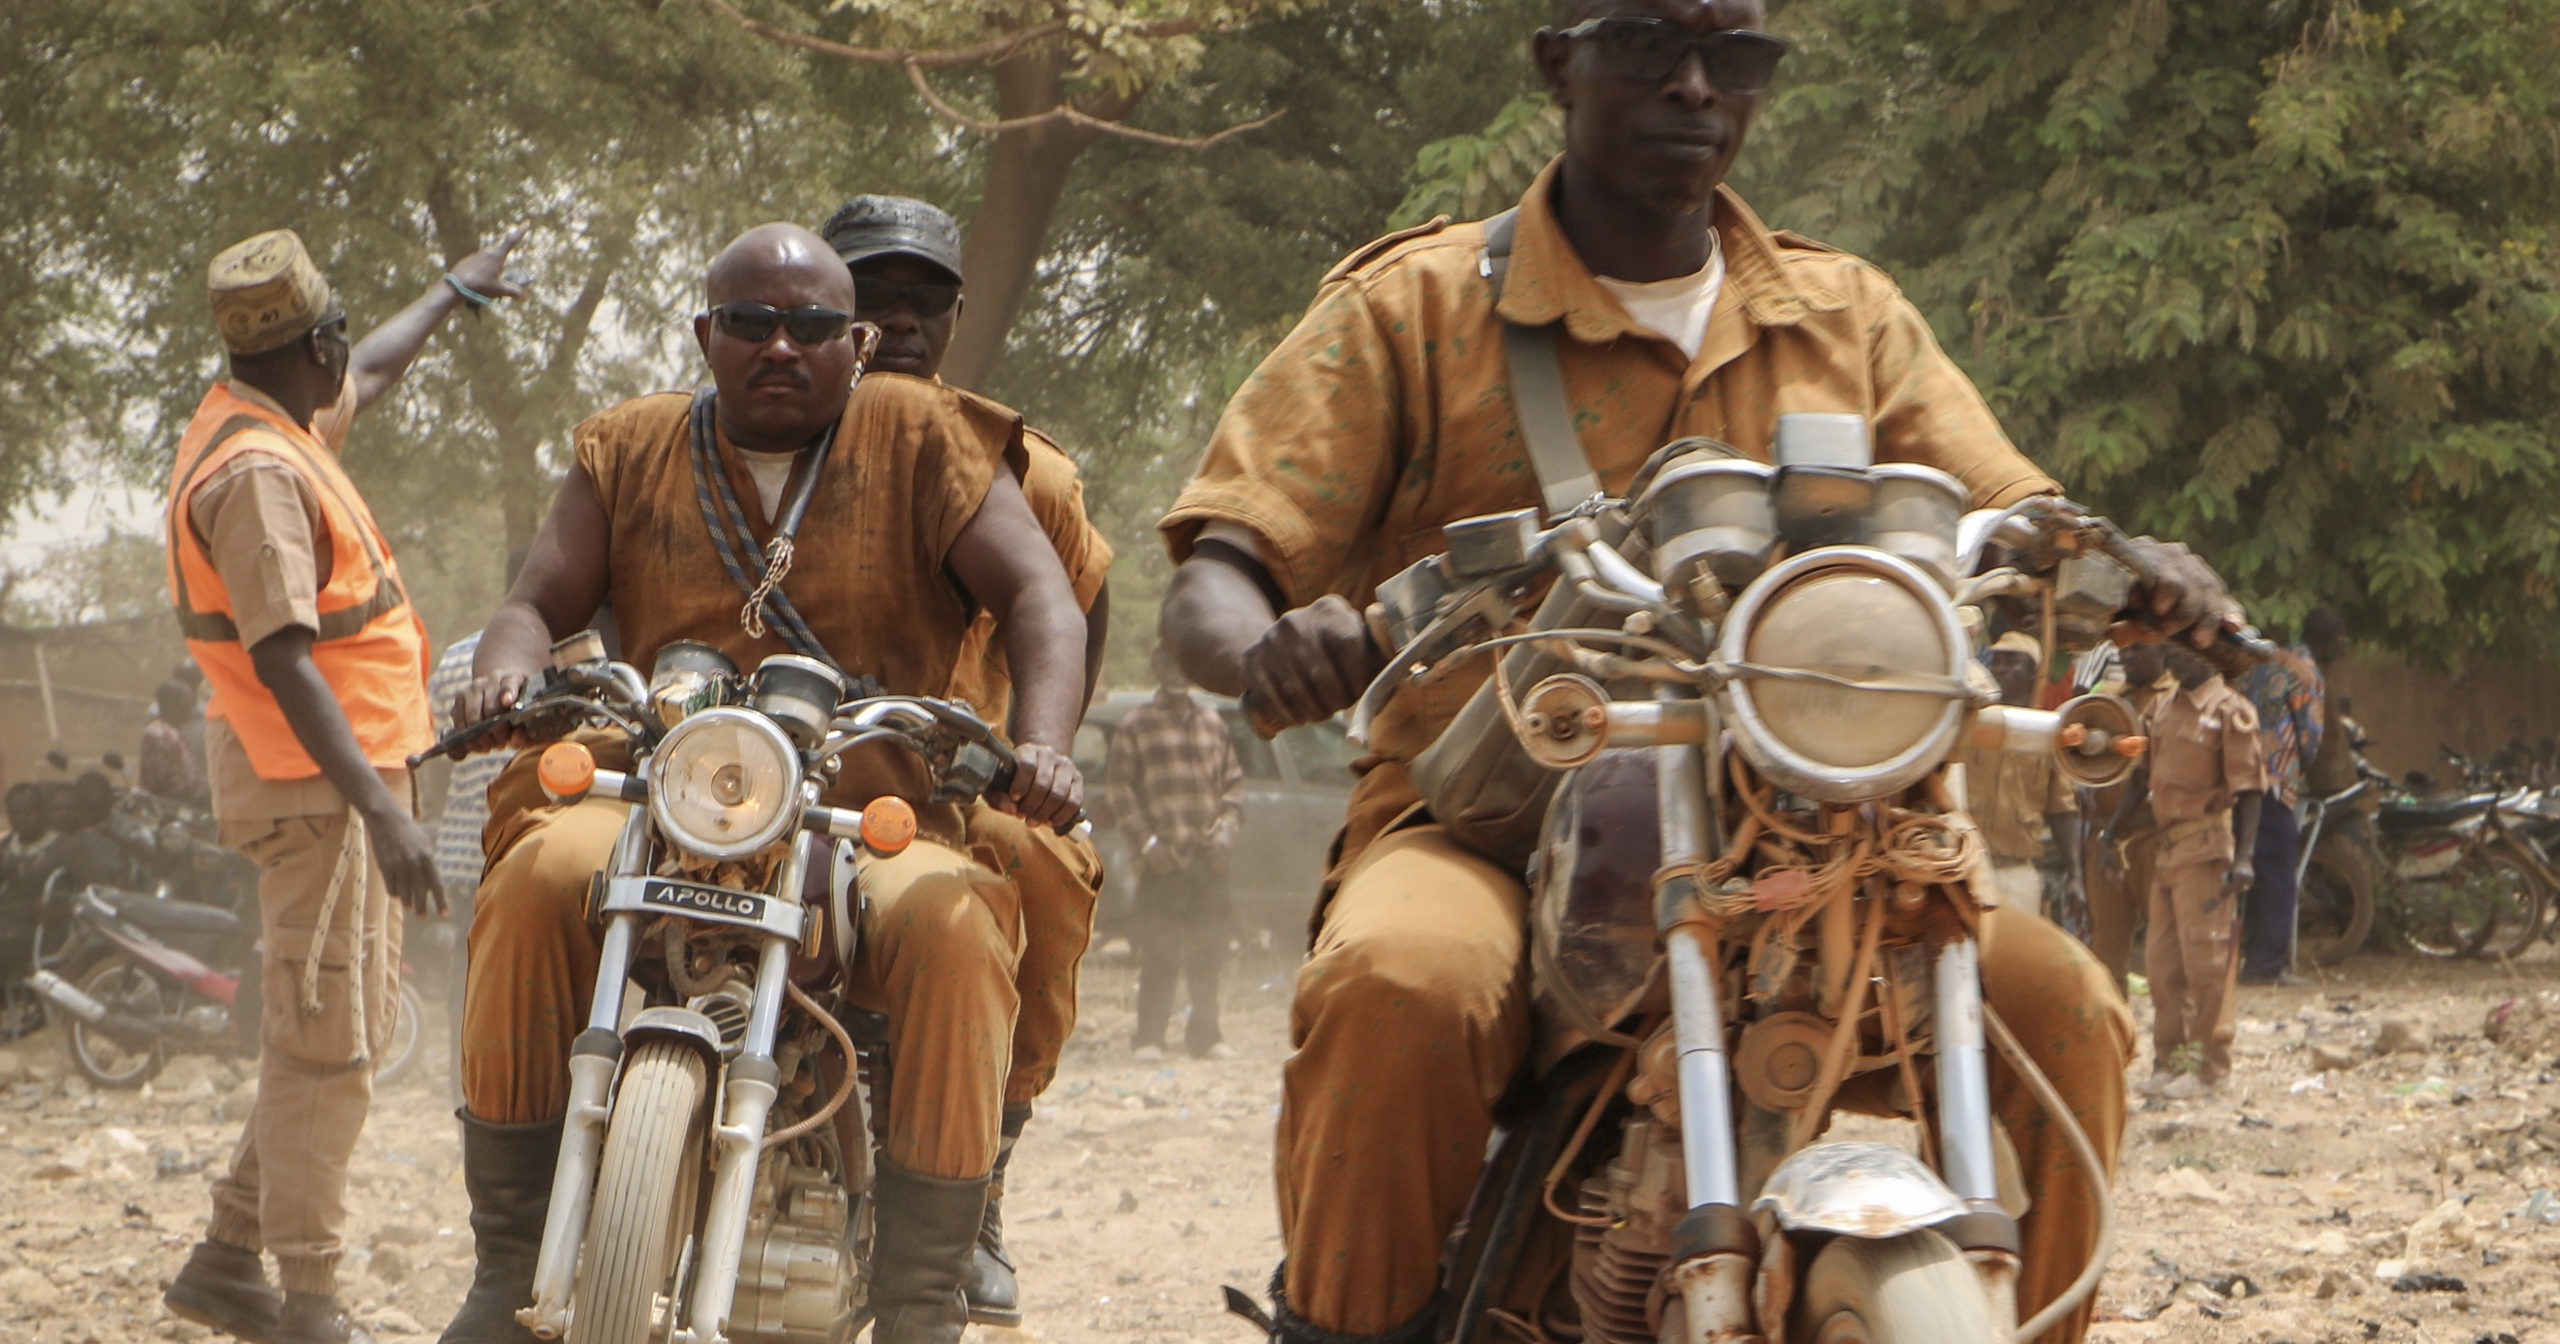 A group of local defense force fighters drive their motorbikes in Ouagadougou, Burkina Faso, on March 14, 2020. In an effort to combat rising jihadist violence, Burkina Faso's military has recruited volunteers to help it fight militants.